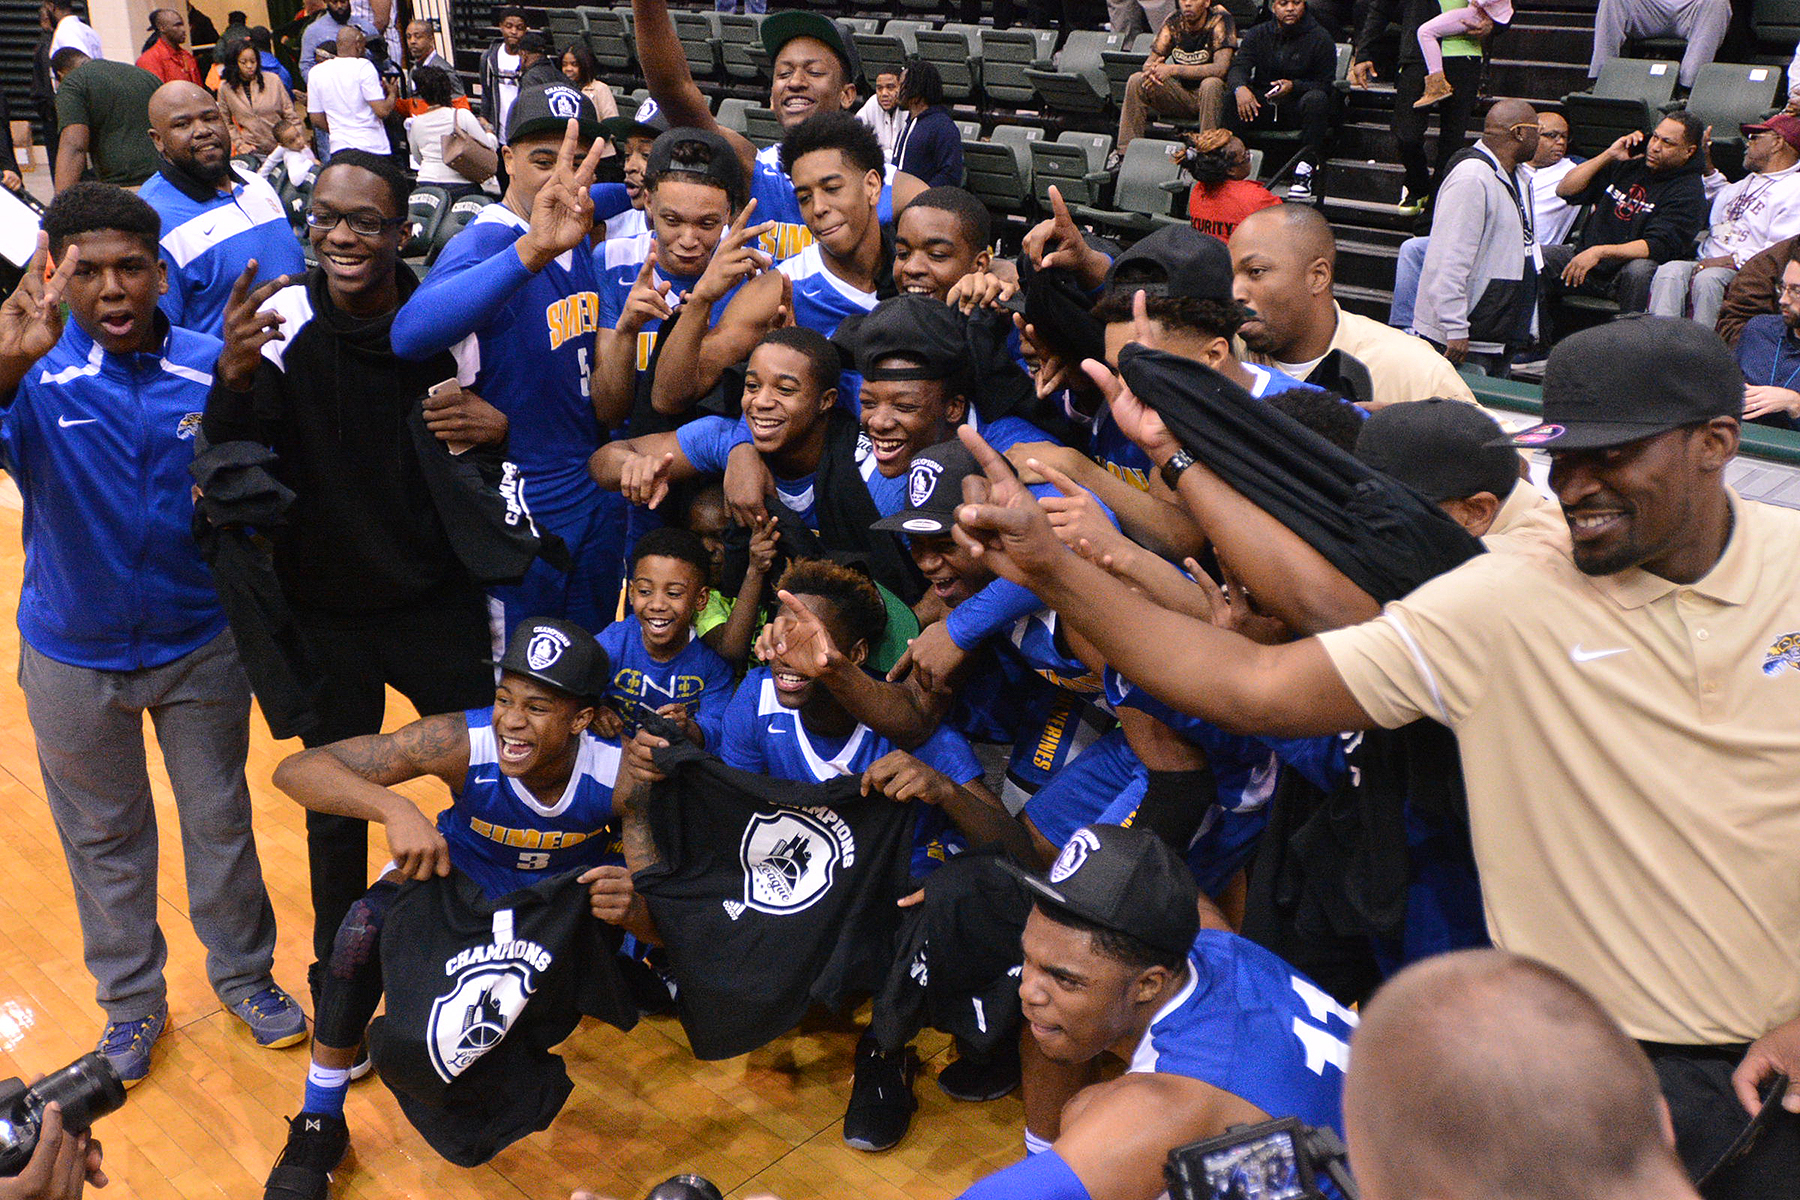 Simeon's celebrates a win against Morgan Park at Chicago State on Feb. 19, 2017.